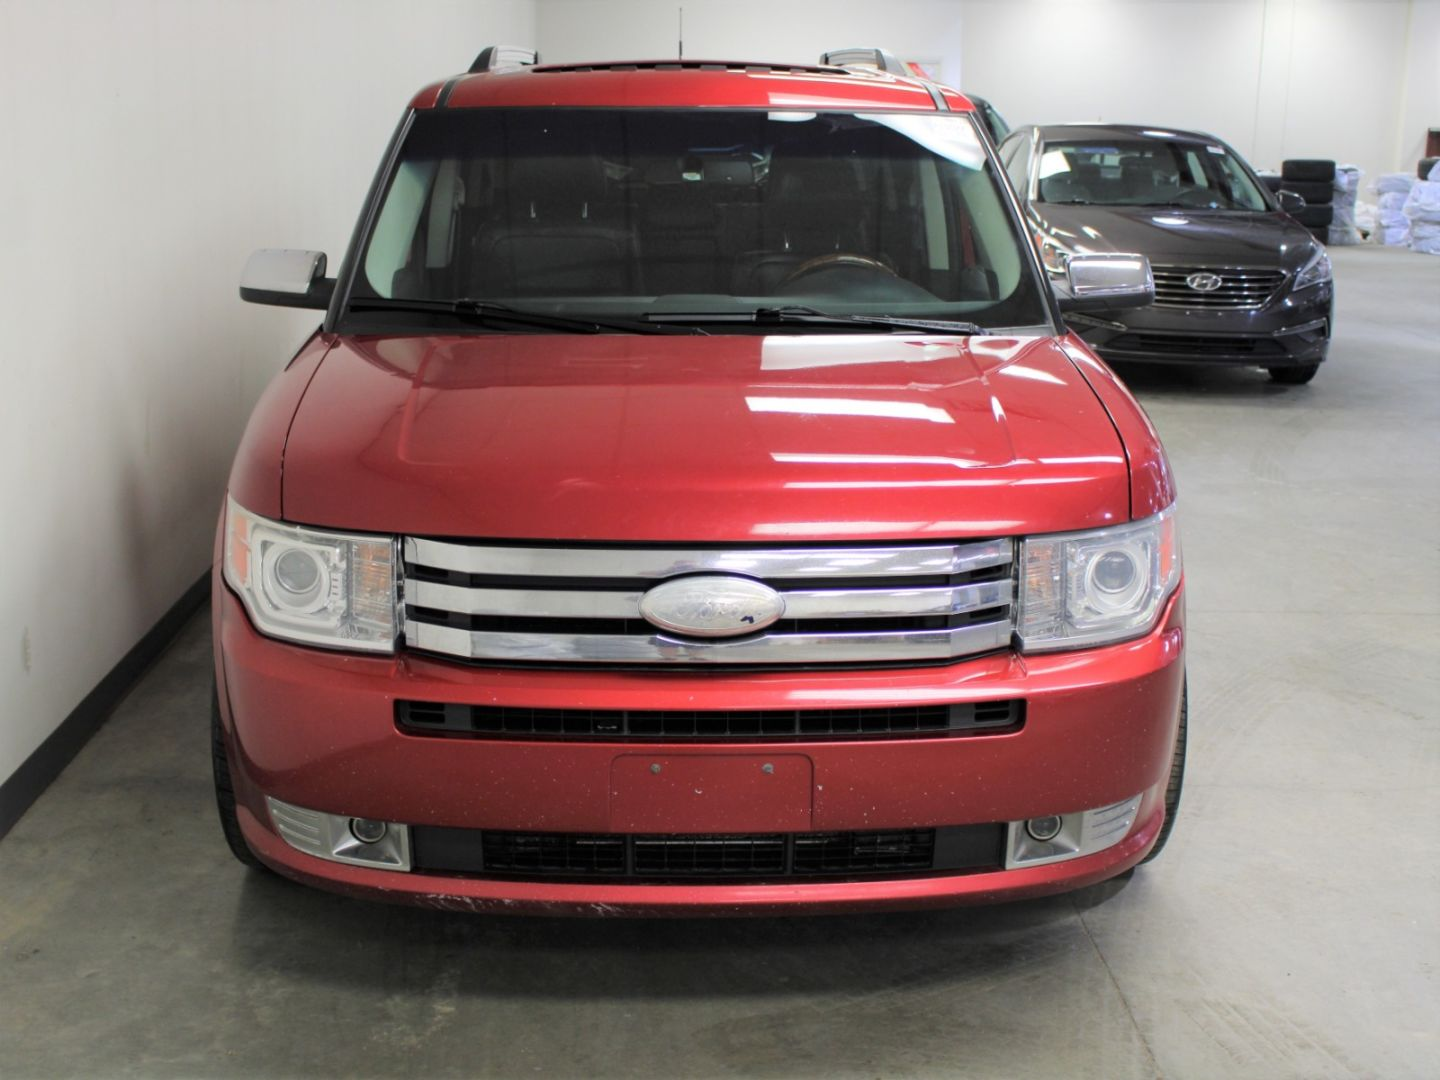 2012 Ford Flex Limited for sale in Edmonton, Alberta